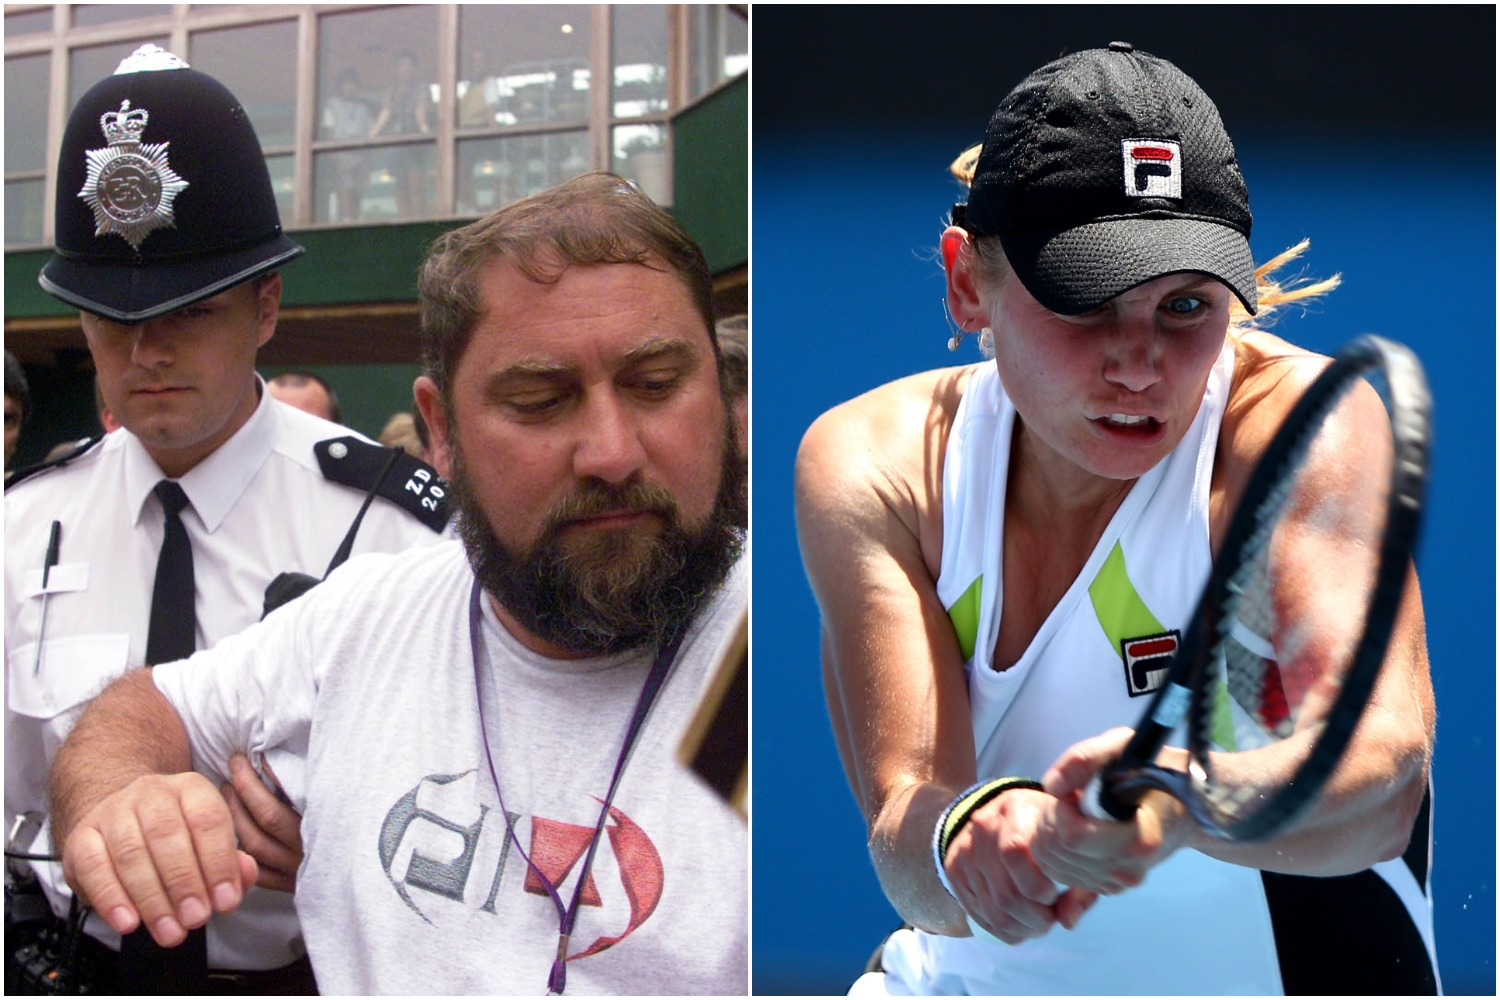 Tennis legend Jelena Dokic finally cut ties with her abusive father, Damir Dokic, after bizarre incidents involving Nazis and salmon.